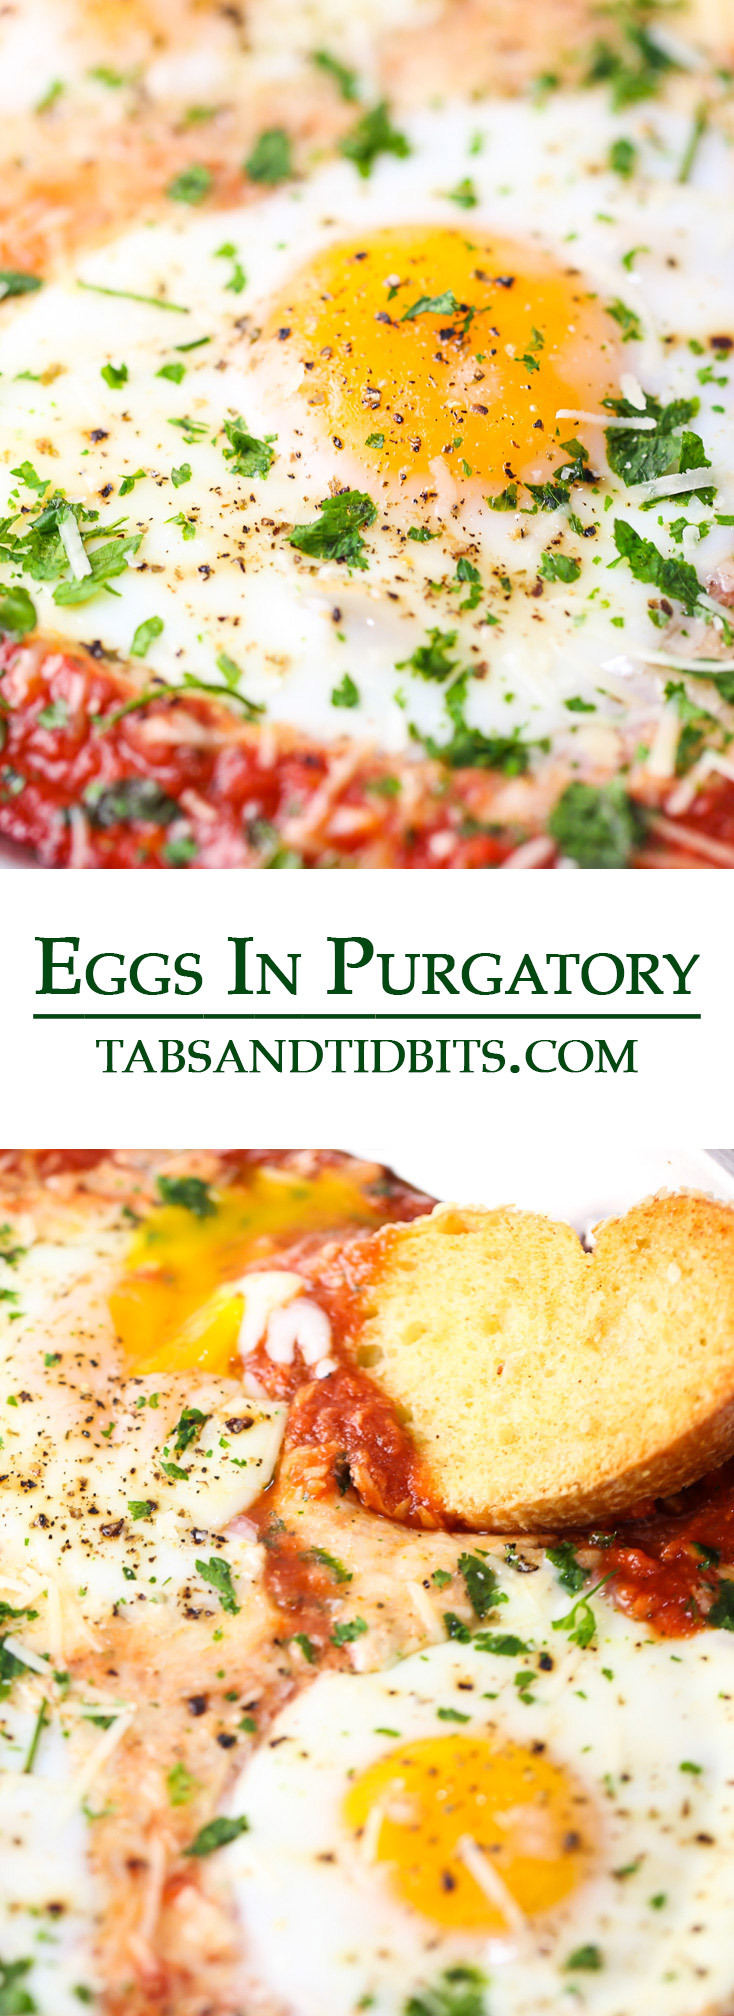 Eggs in Purgatory is a fun name that simply means eggs baked in a marinara sauce! A rustic Italian inspired dish that is made with simple ingredients and quick to make!